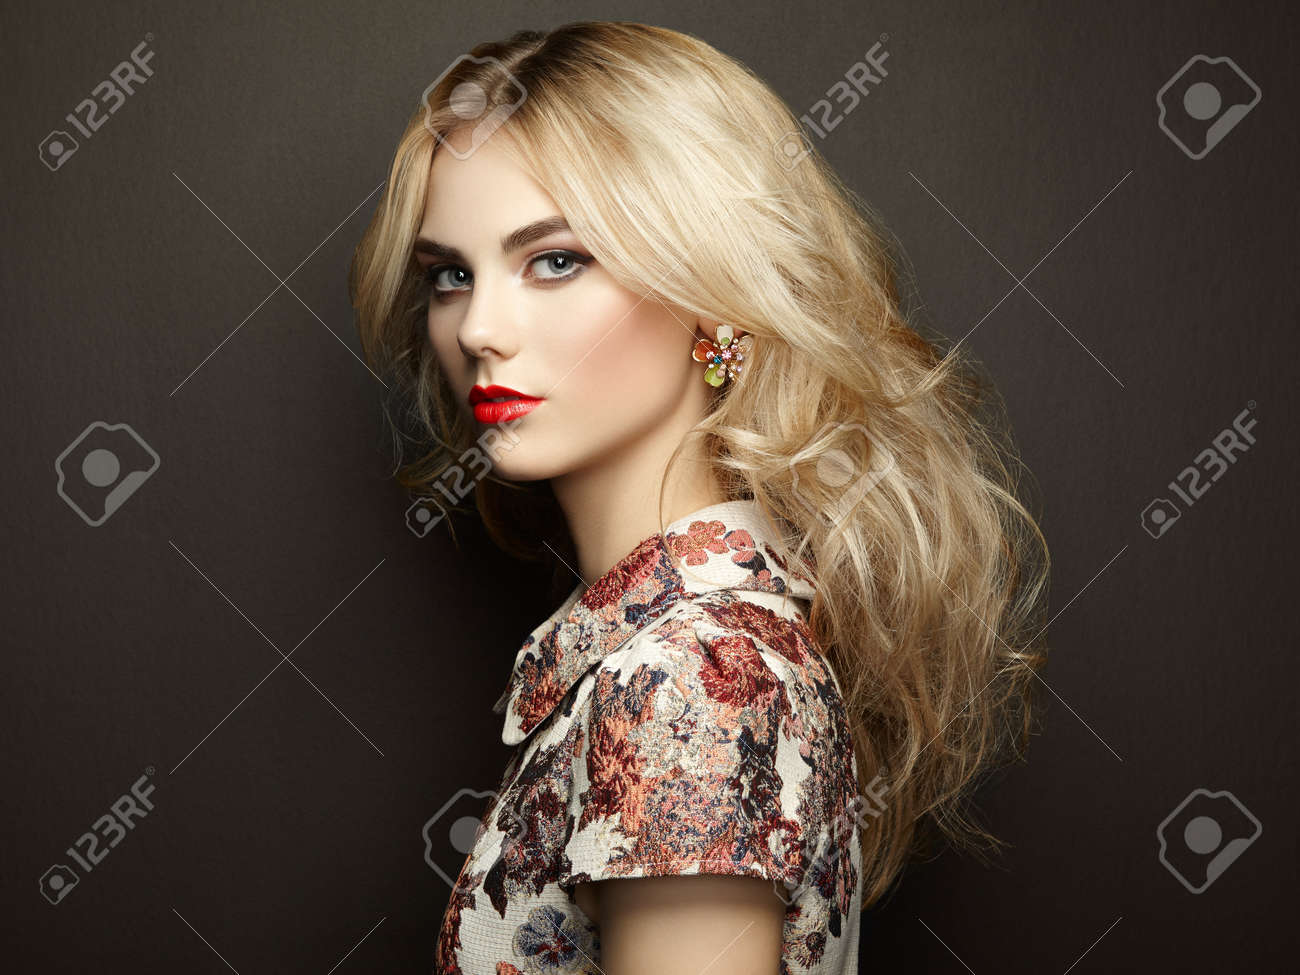 Portrait of beautiful sensual woman with elegant hairstyle.  Perfect makeup. Blonde girl. Fashion photo. Jewelry and dress Stock Photo - 46206503